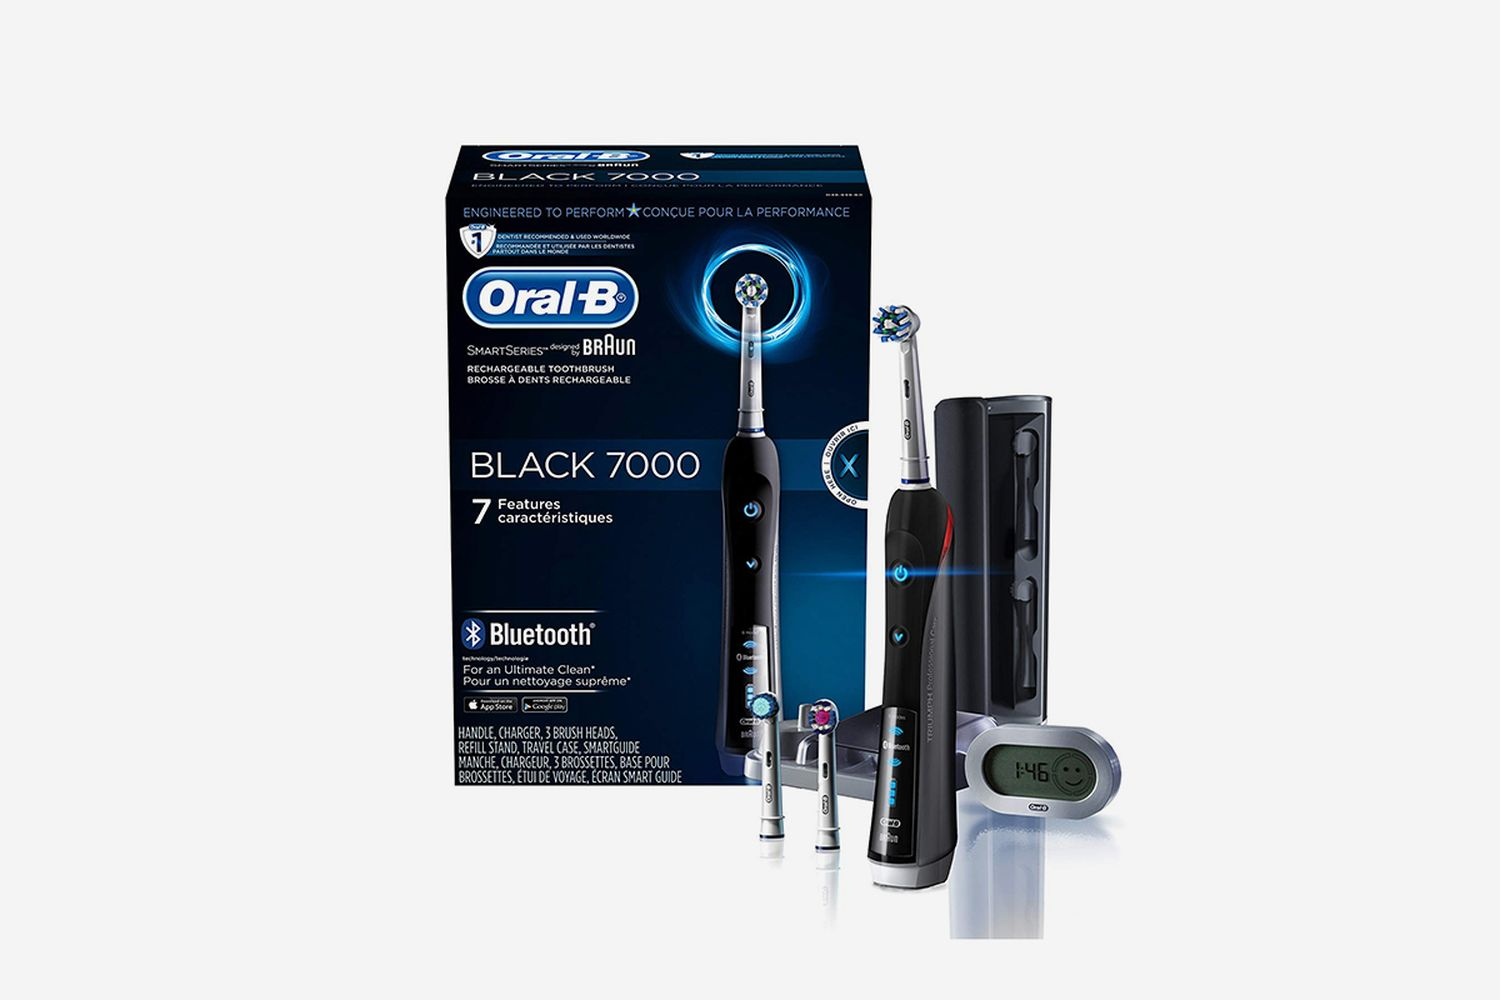 7000 SmartSeries Electric Toothbrush